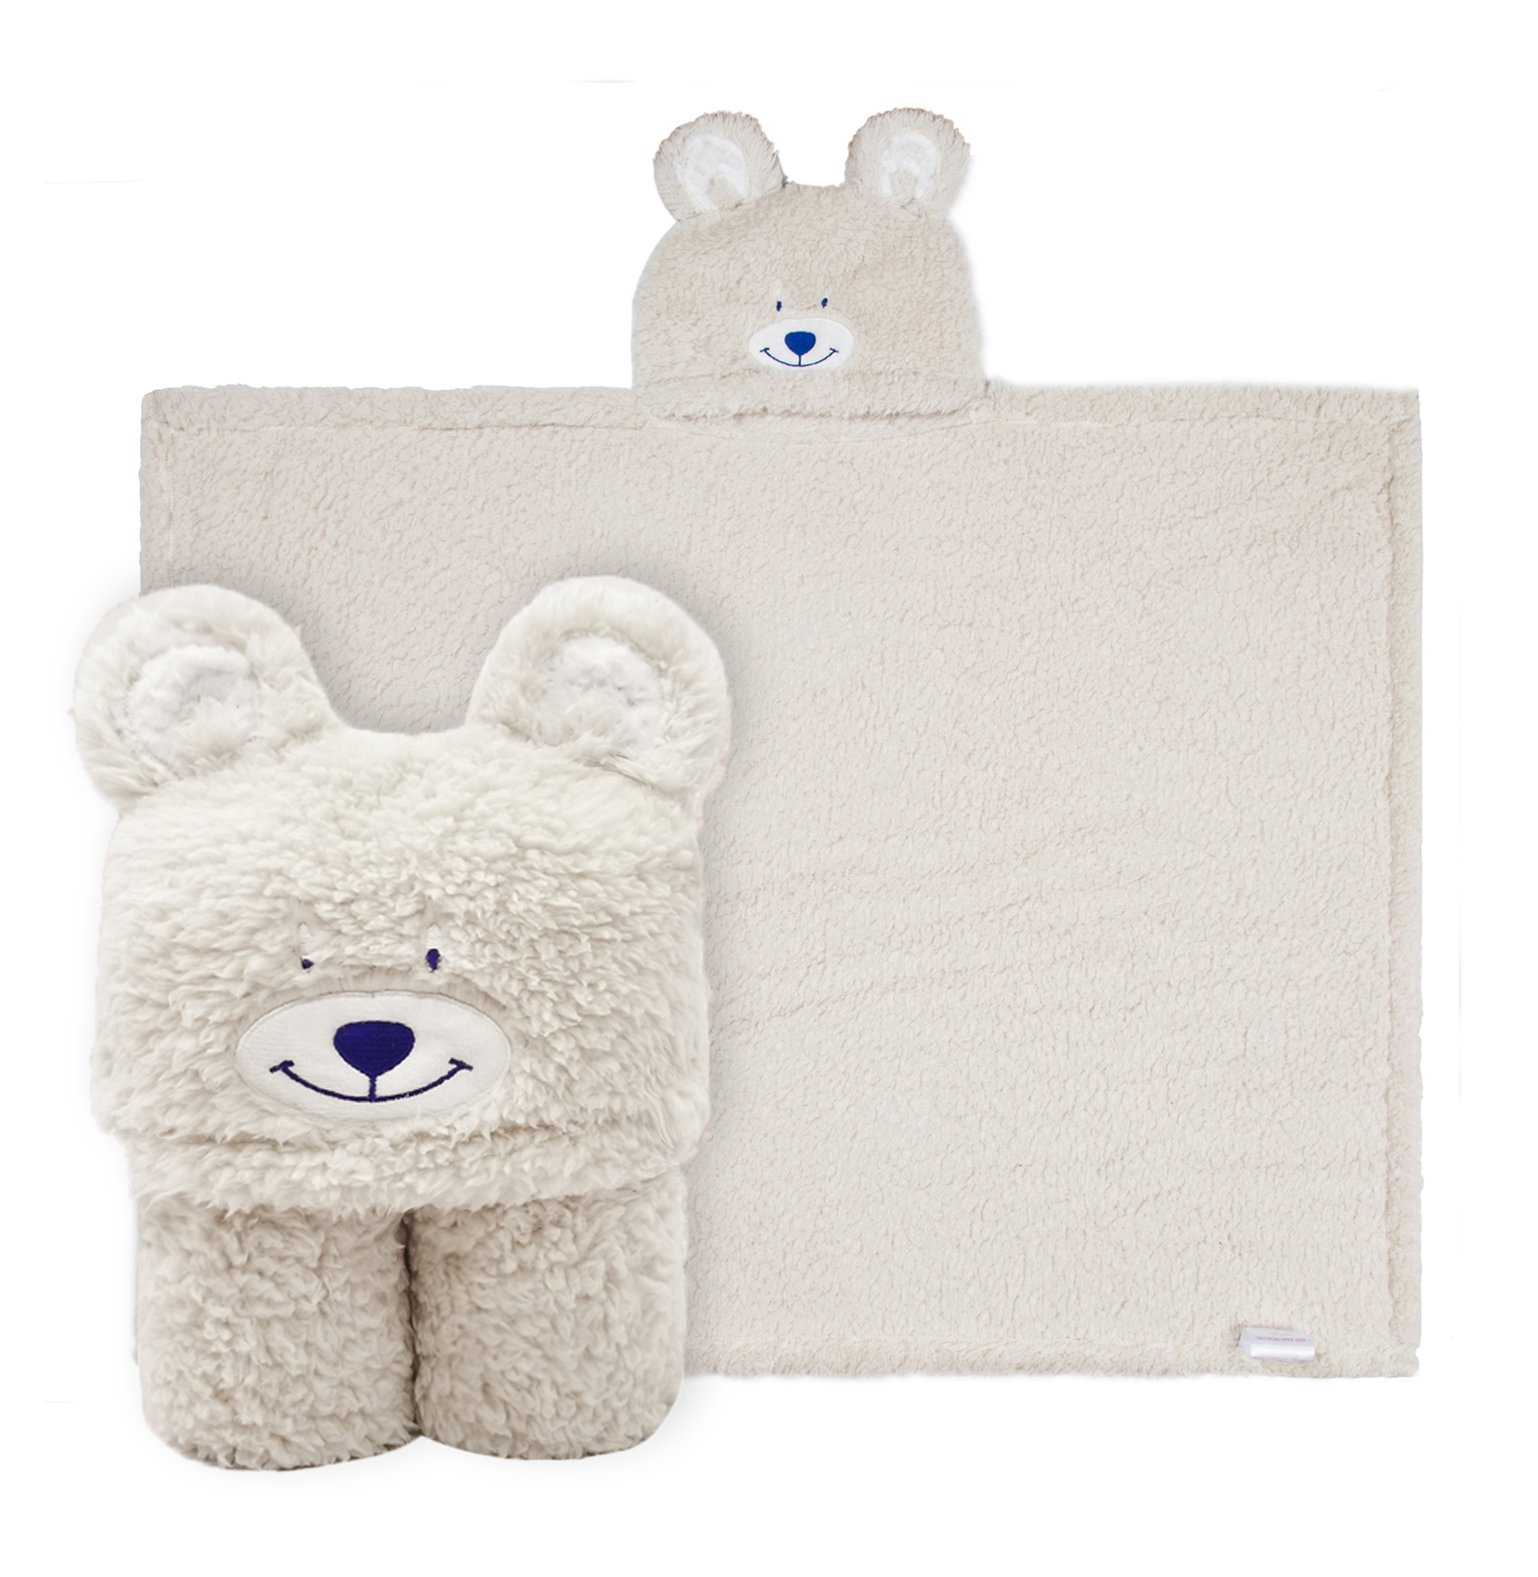 Kids Hooded Towel Blanket,Cute Animal Bear Plush Sherpa Fleece Bath Towel,Fit 3-10 Years Old,Best Gifts for Boys and Girls